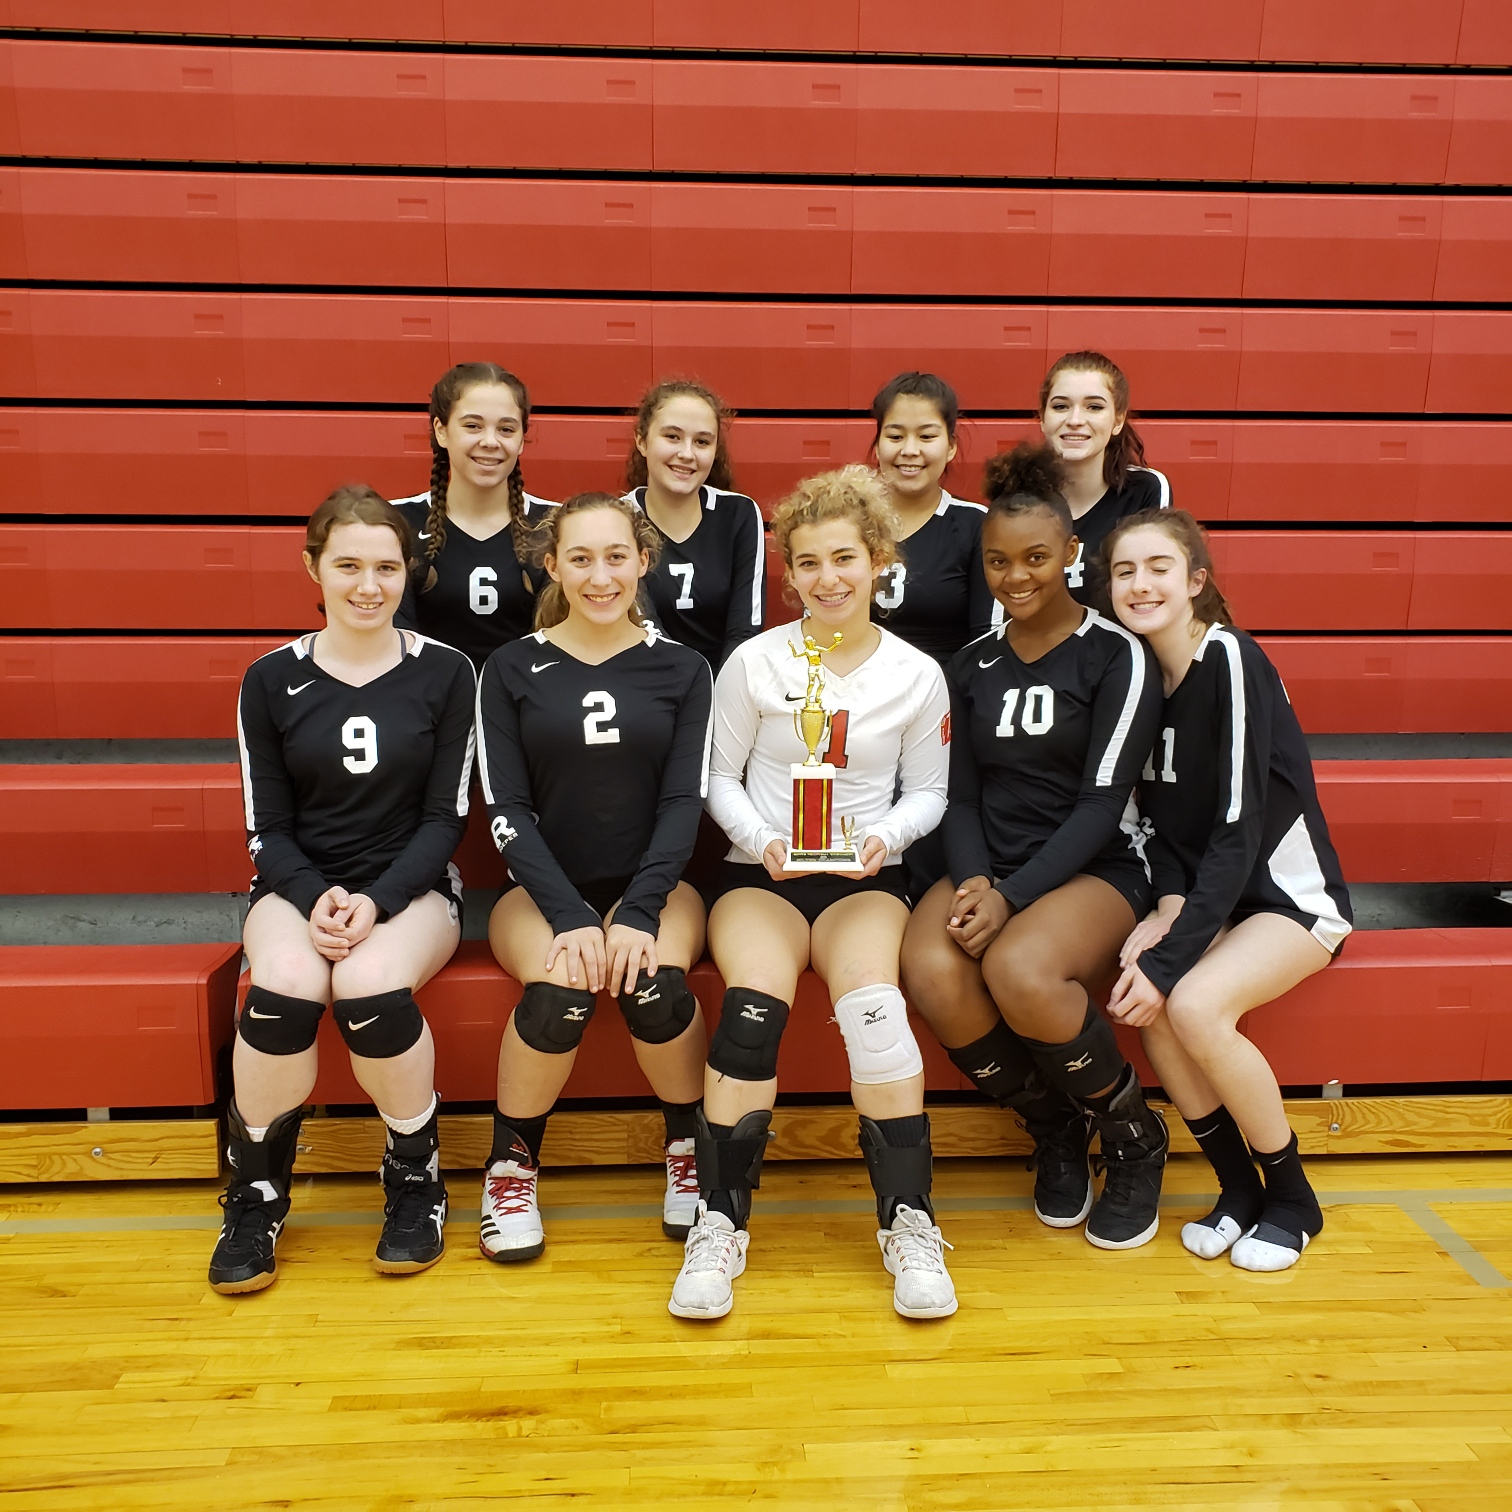 Volleyball Program Finding Success, Eyes on Districts